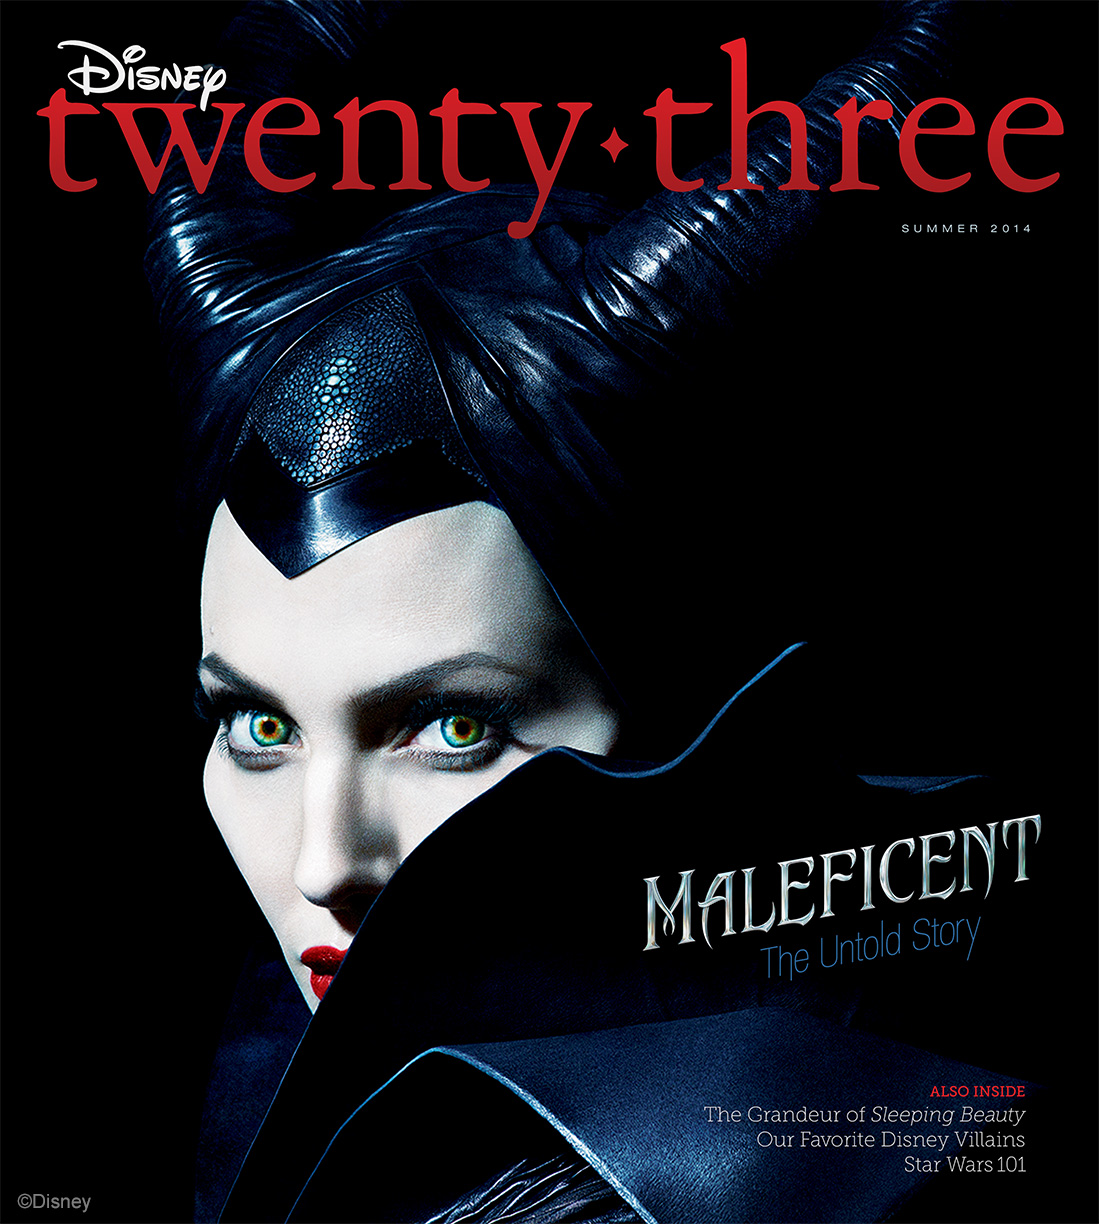 Maleficent in the summer publication of Disney twenty-three's Summer issue, available exclusively to Gold Members of D23, also includes a behind-the-engine look at Walt Disney World's newest theme park attraction, the Seven Dwarfs Mine Train